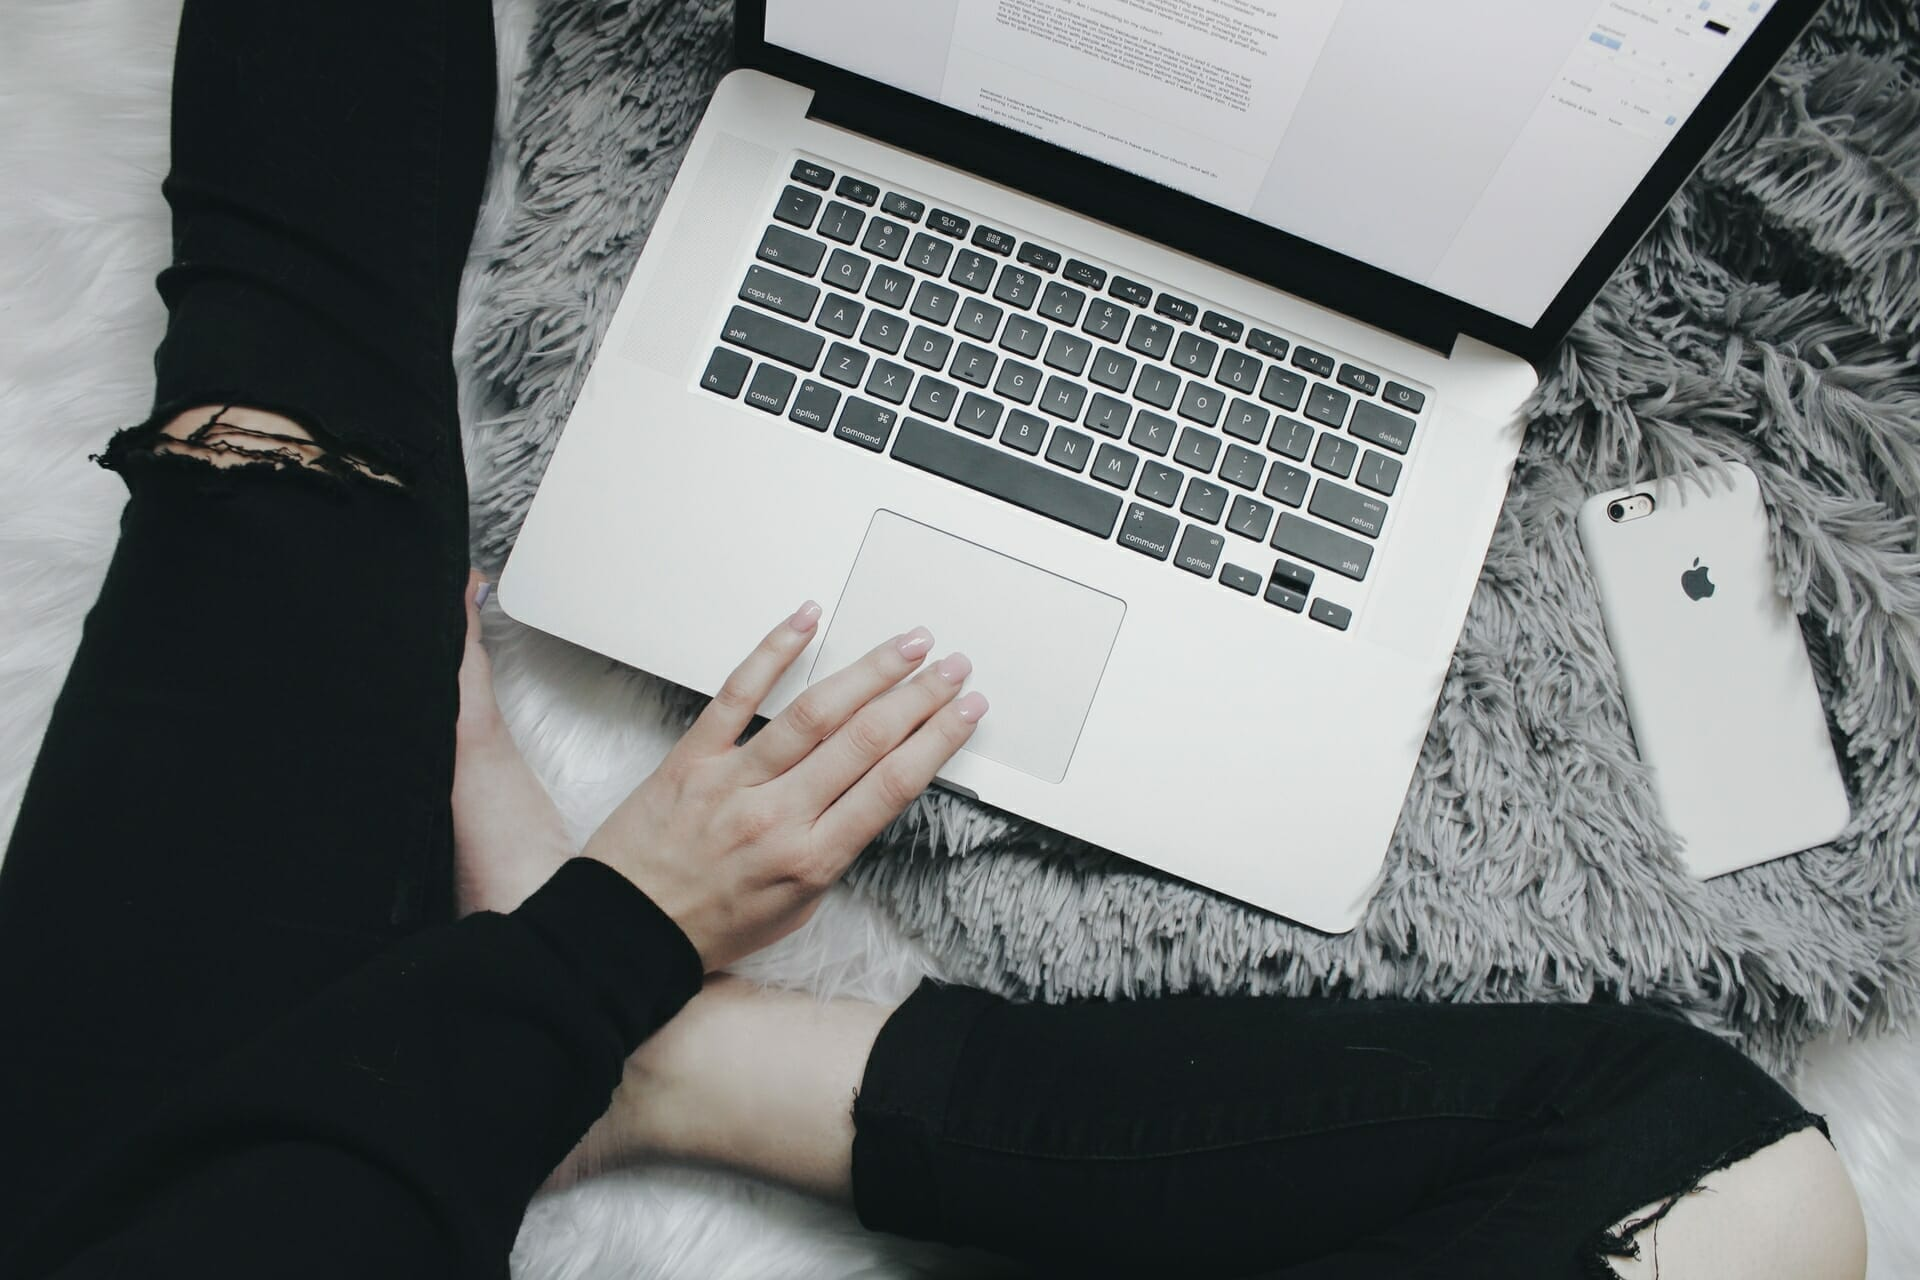 17 Working from Home Tips to Change Your Life via @allamericanatlas